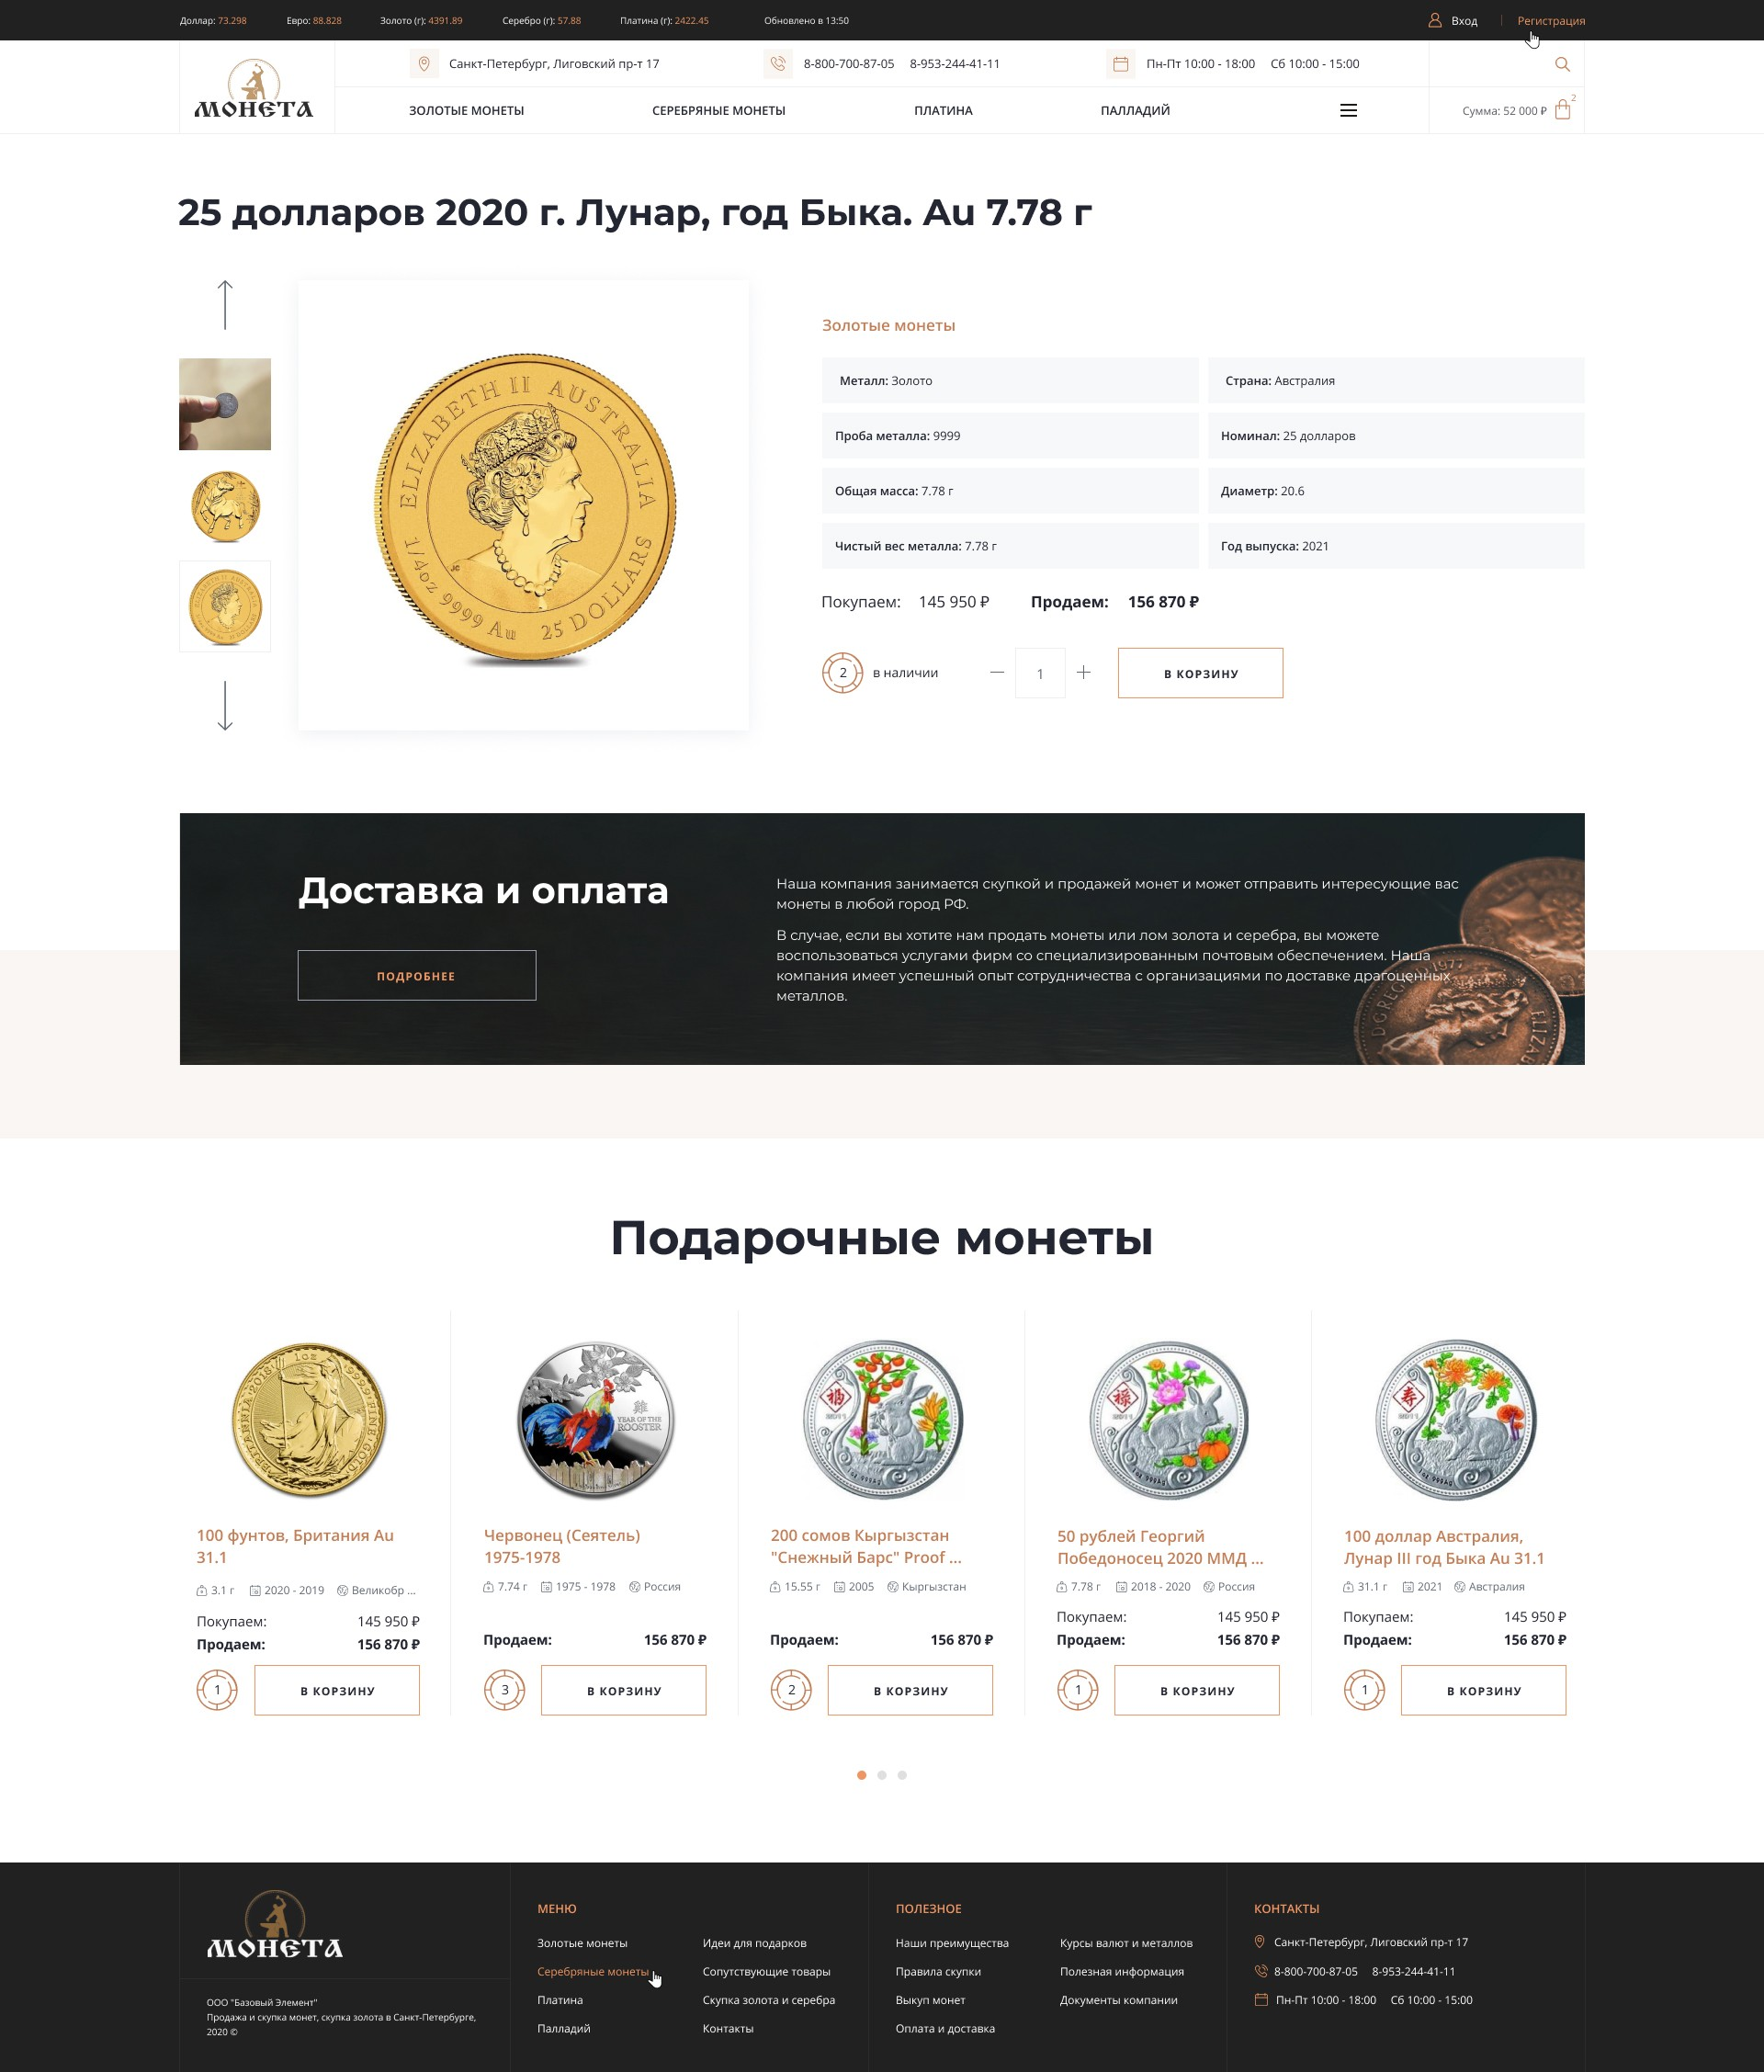 03_MonetaInvest_ProductCard_1.0